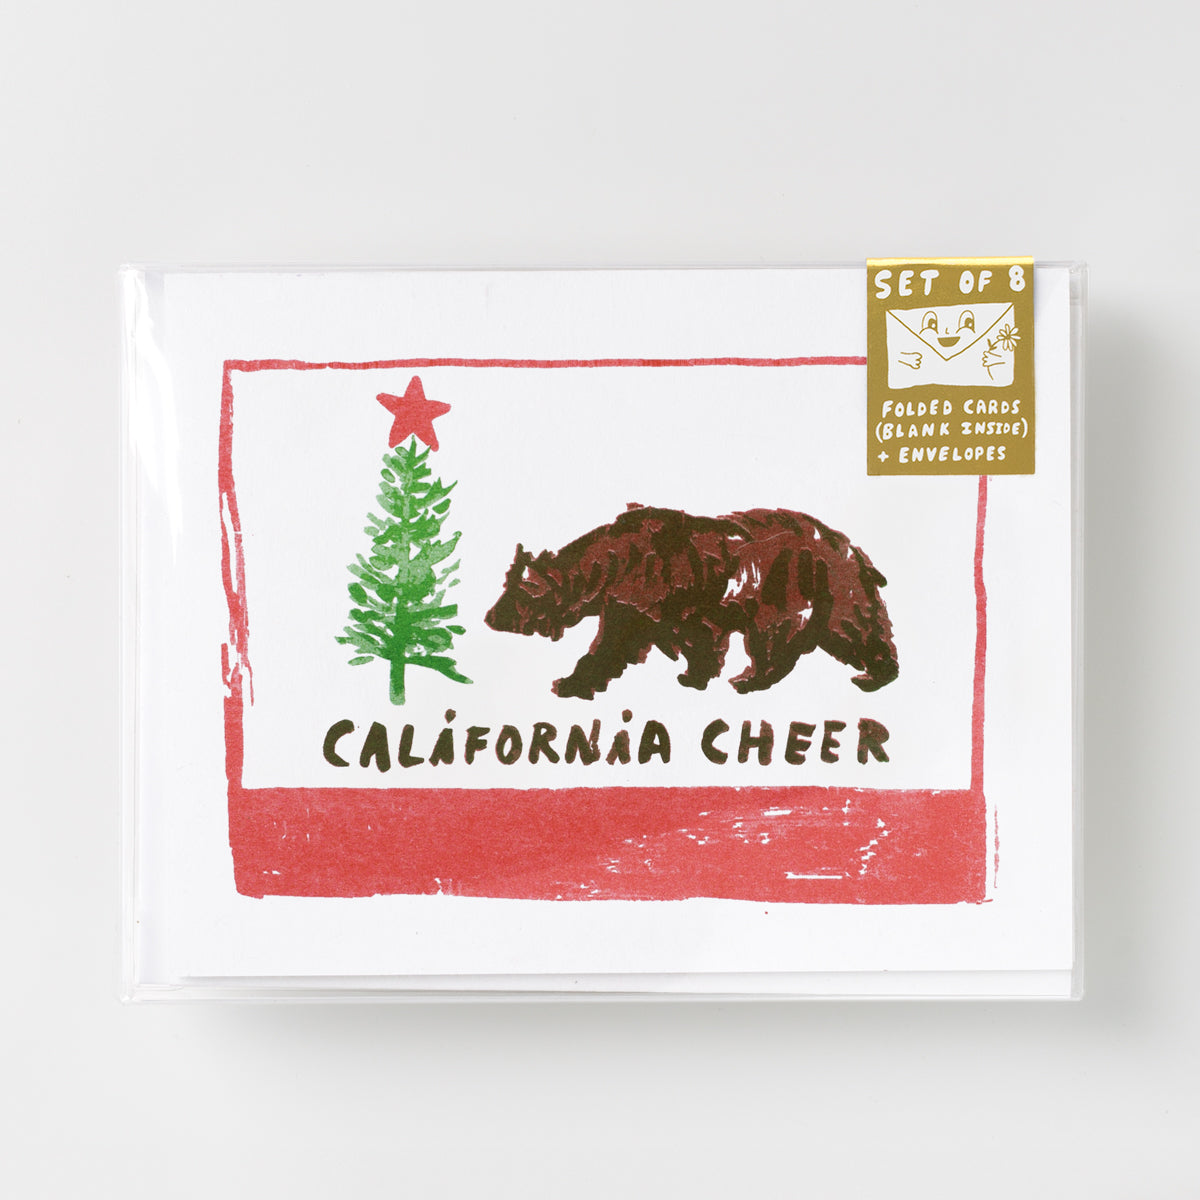 California Cheer holiday risograph greeting card set of 8.